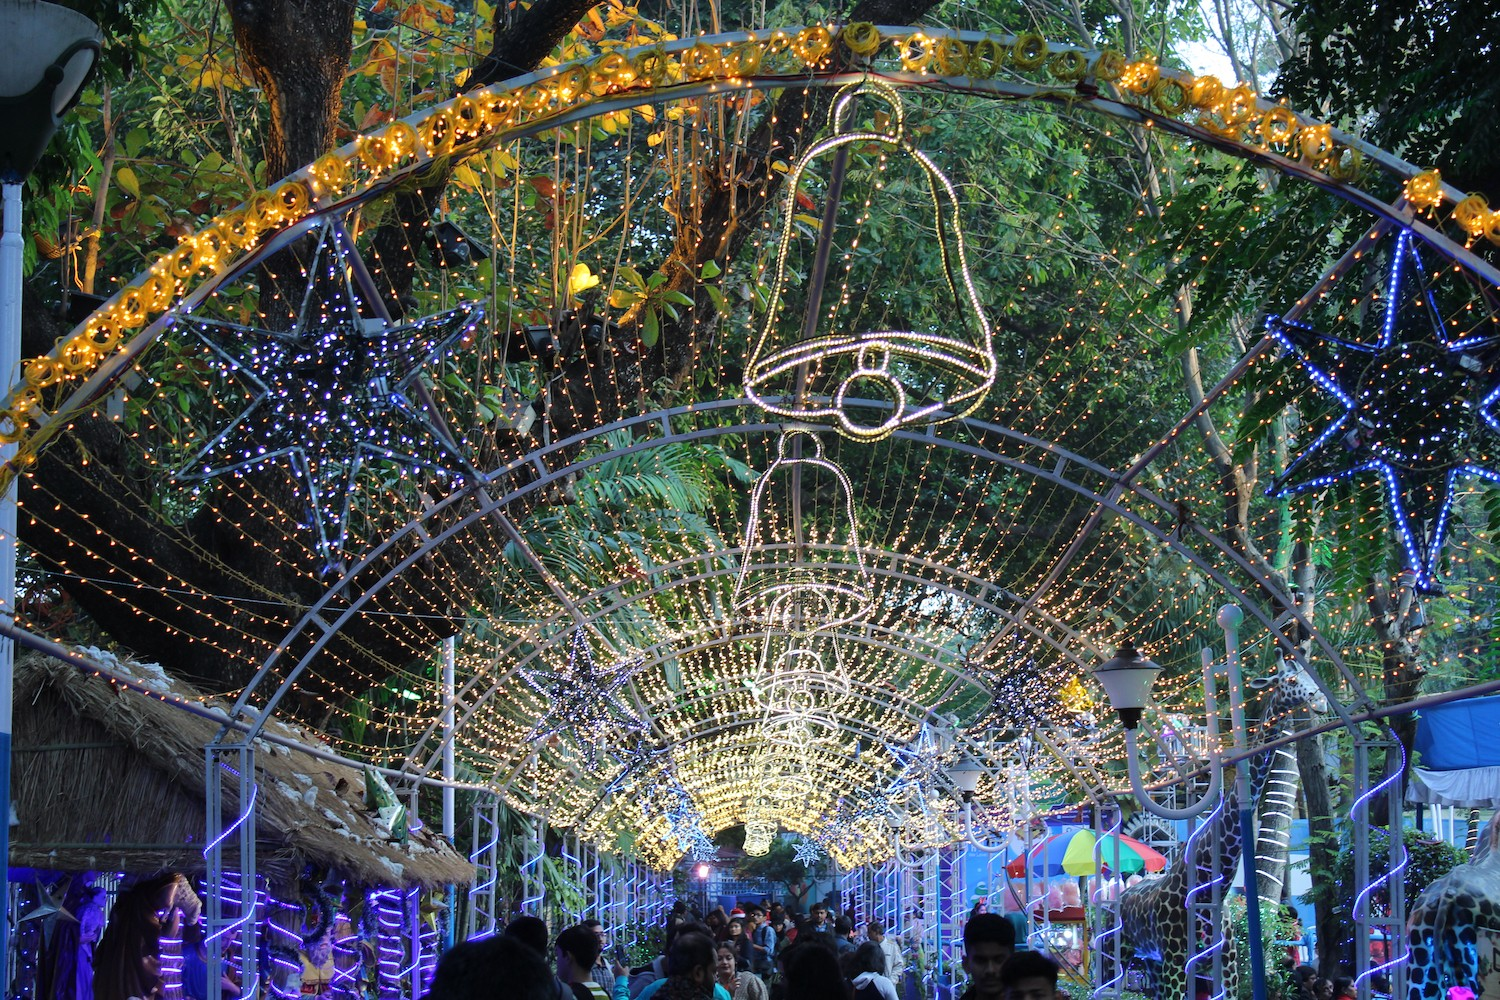 Christmas decorations on a street in Kolkata with crowd